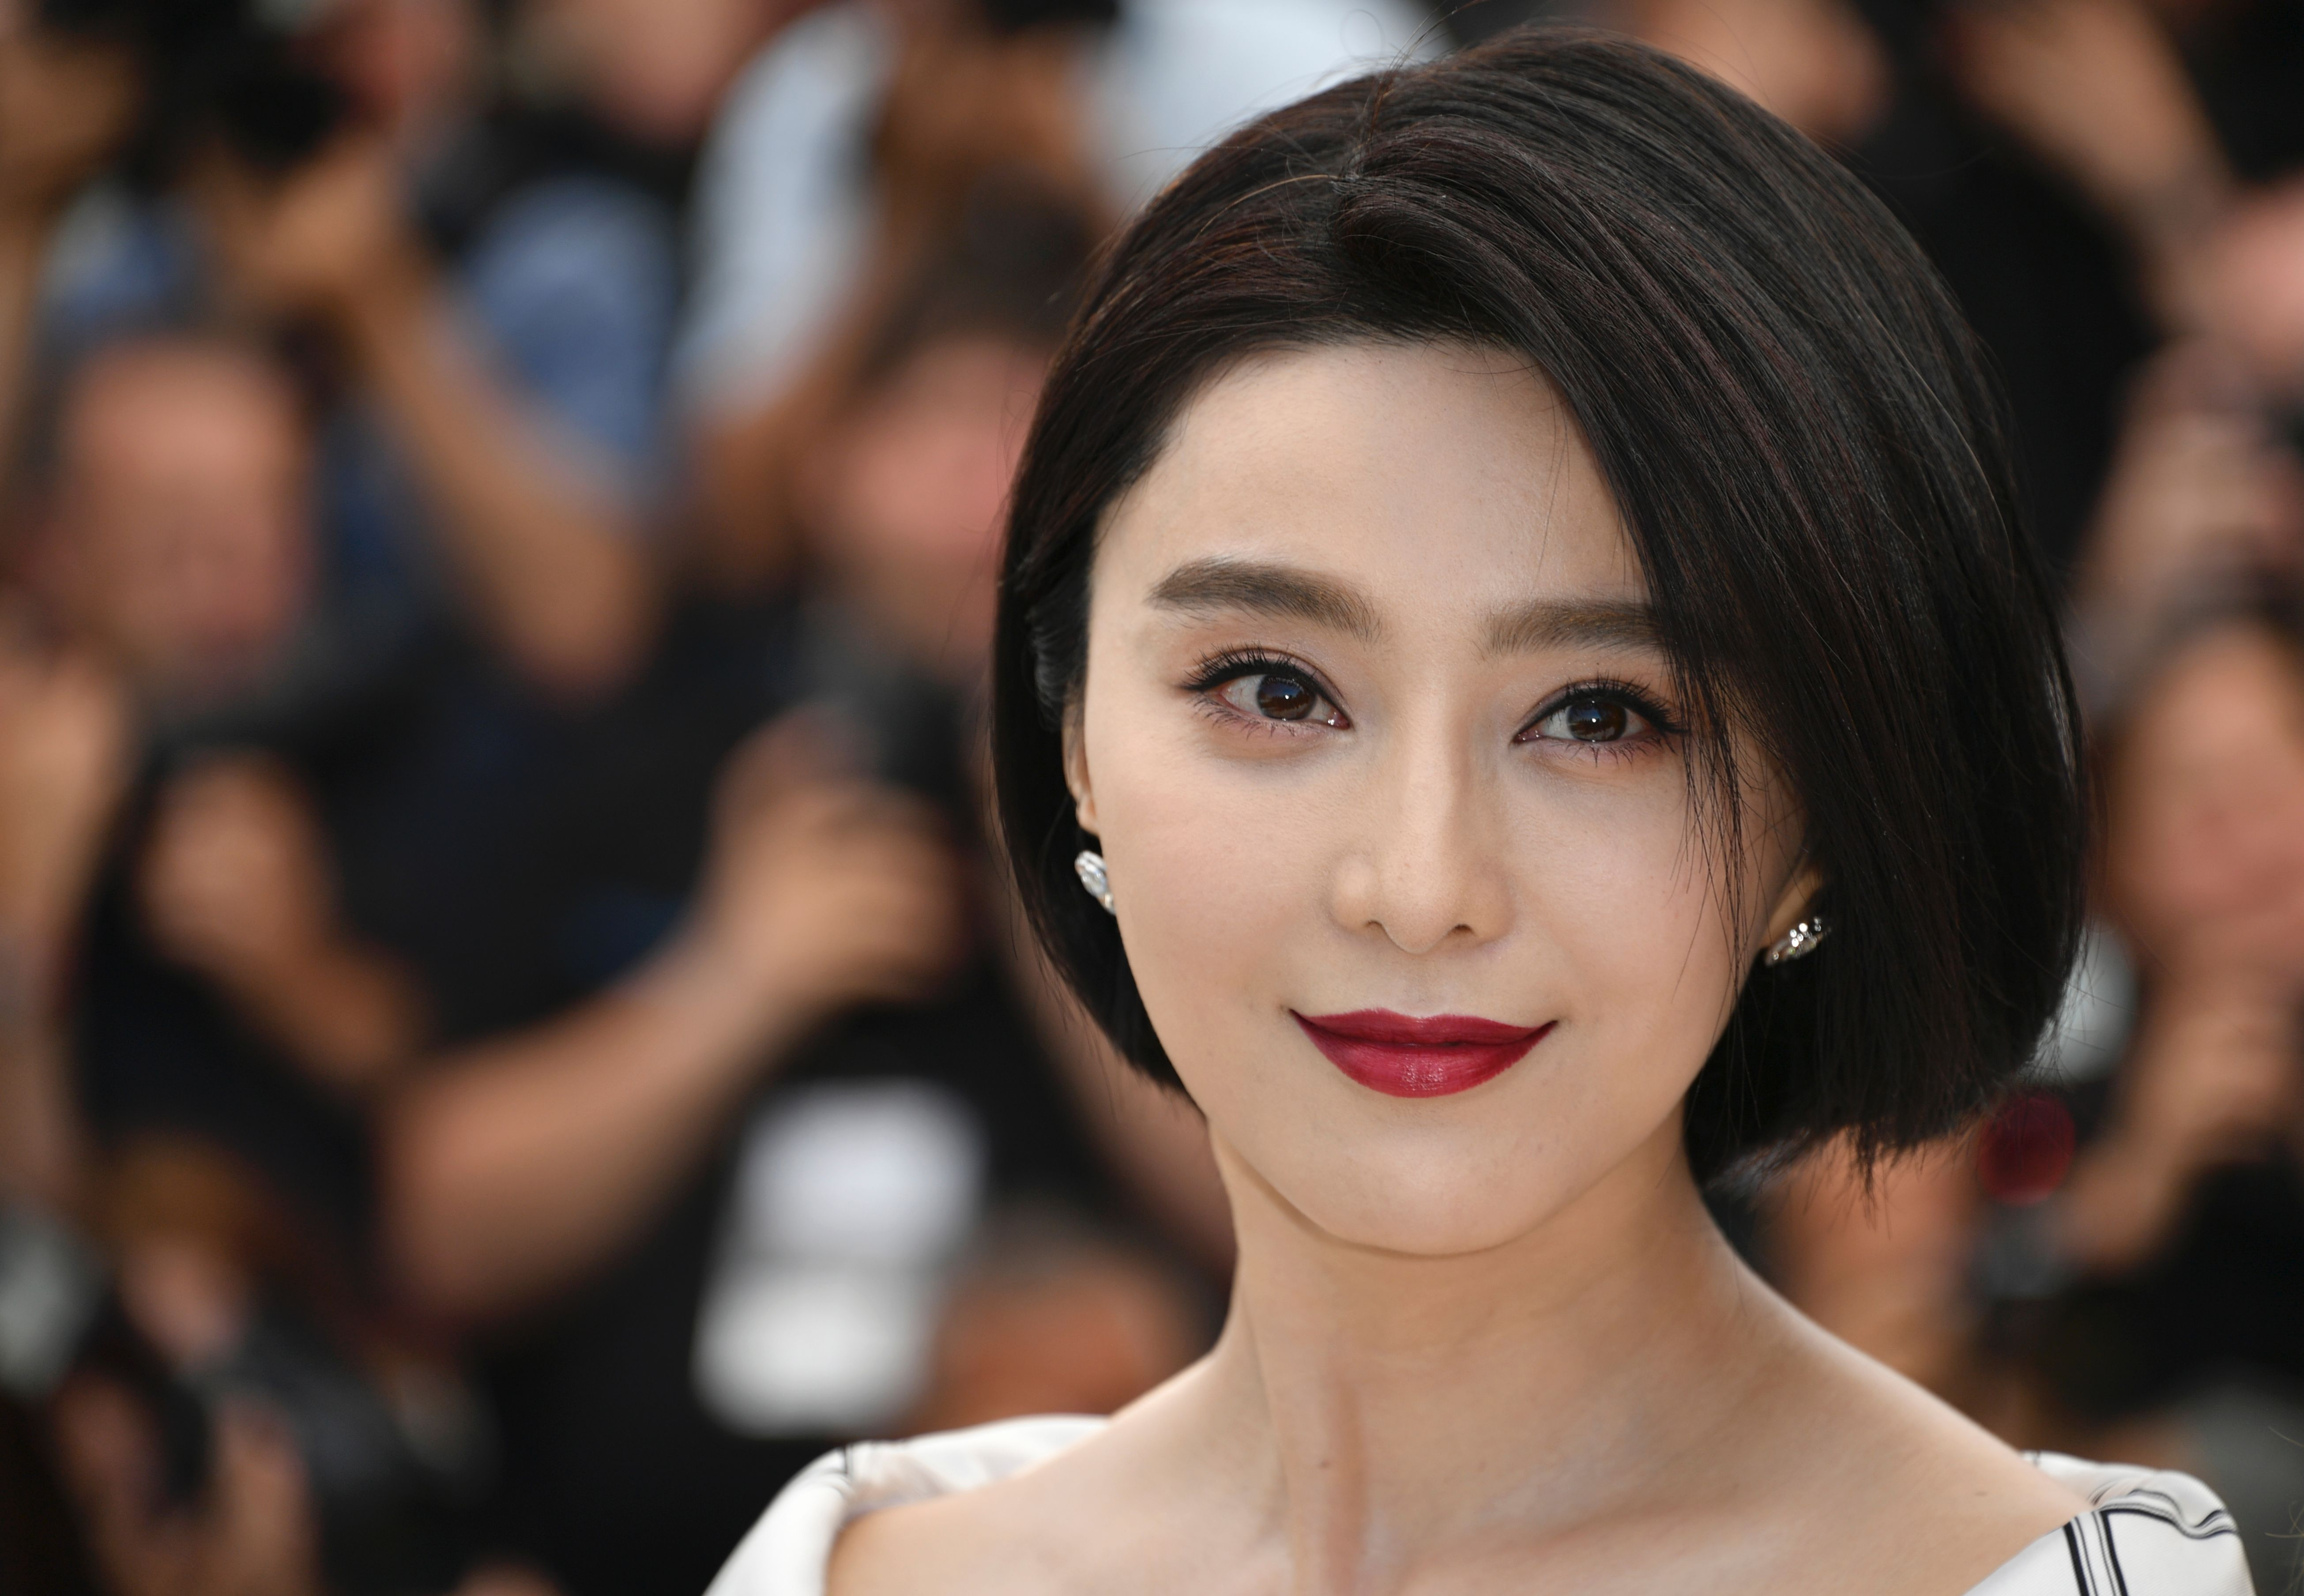 Chinese actress and member of the Feature Film jury Fan Bingbing poses on May 17, 2017 during a photocall ahead of the opening ceremony of the 70th edition of the Cannes Film Festival in Cannes, southern France. / AFP PHOTO / LOIC VENANCE (Photo credit should read LOIC VENANCE/AFP/Getty Images)